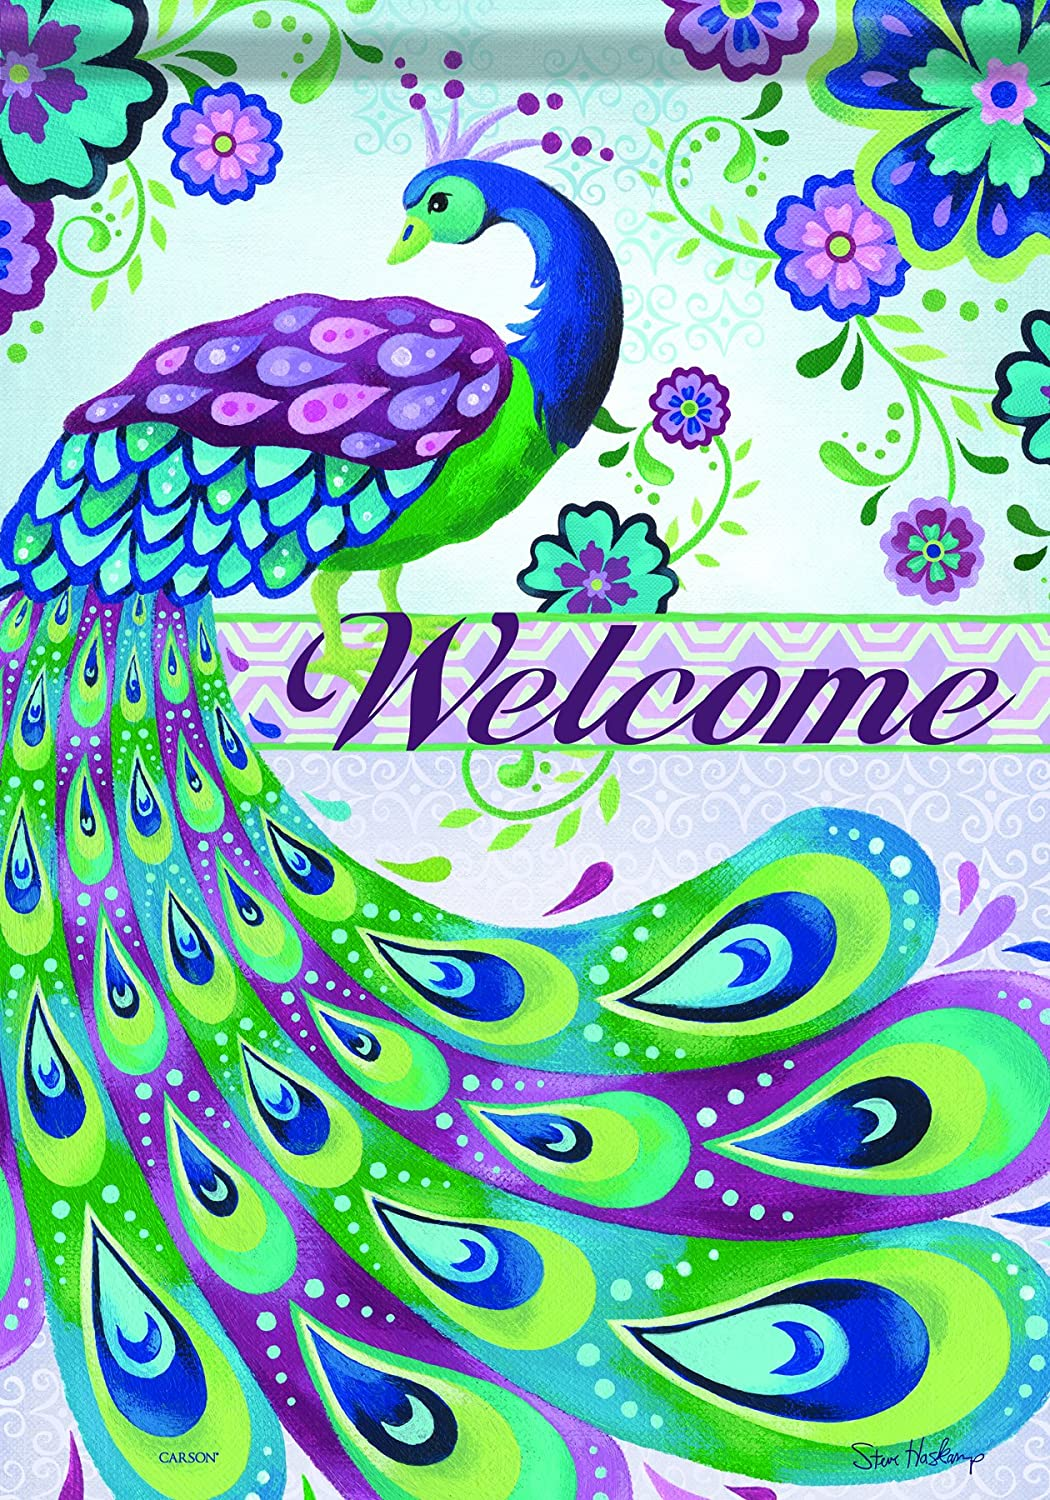 Peacock Welcome Sign Decorative